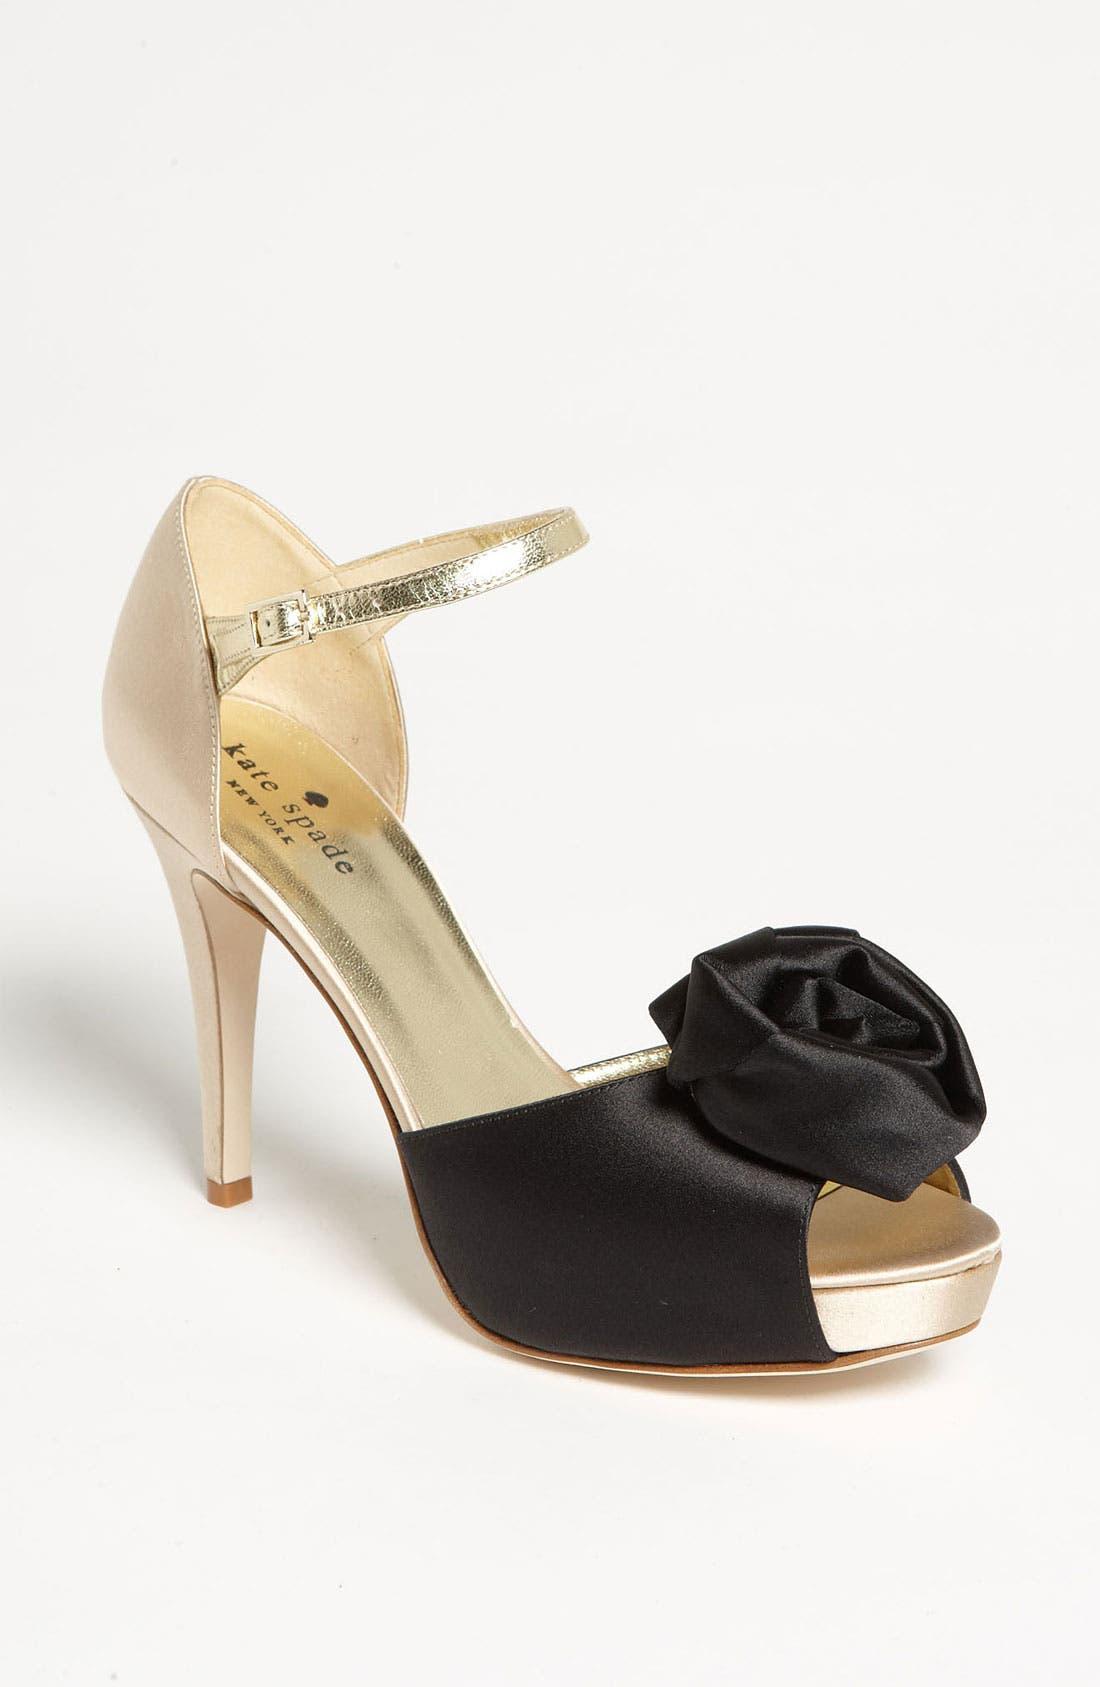 Alternate Image 1 Selected - kate spade new york 'gretchen' pump